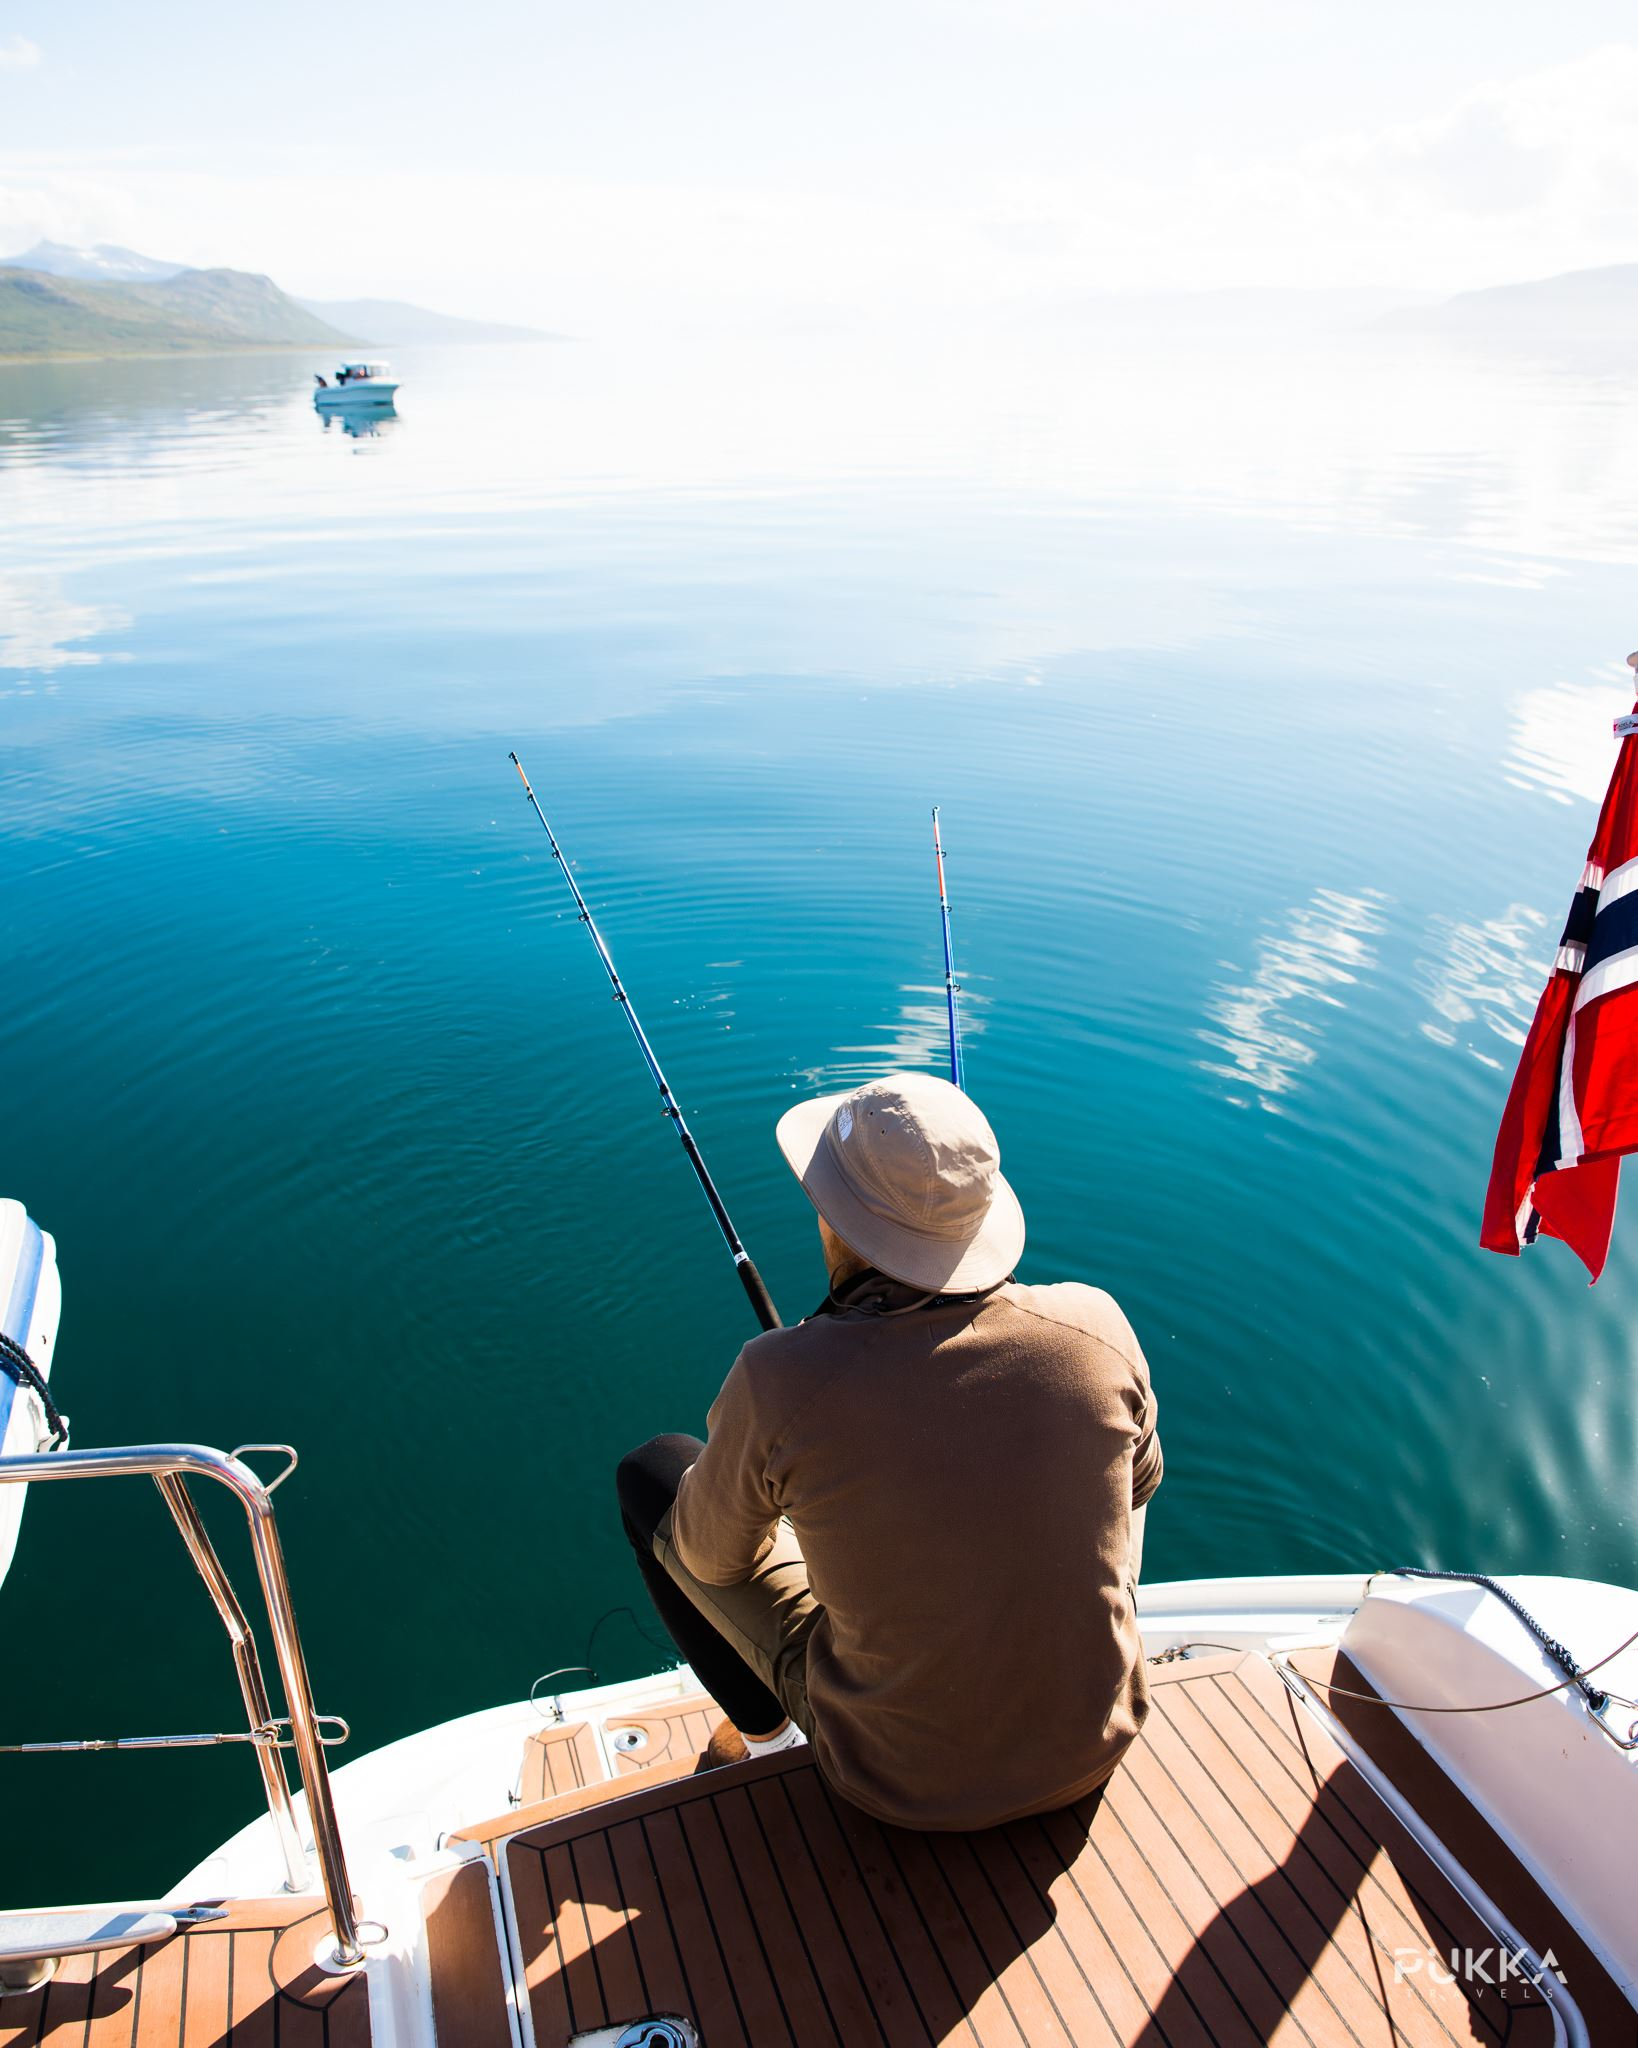 © Pukka Travels, Man sitting on the sunny deck fishing